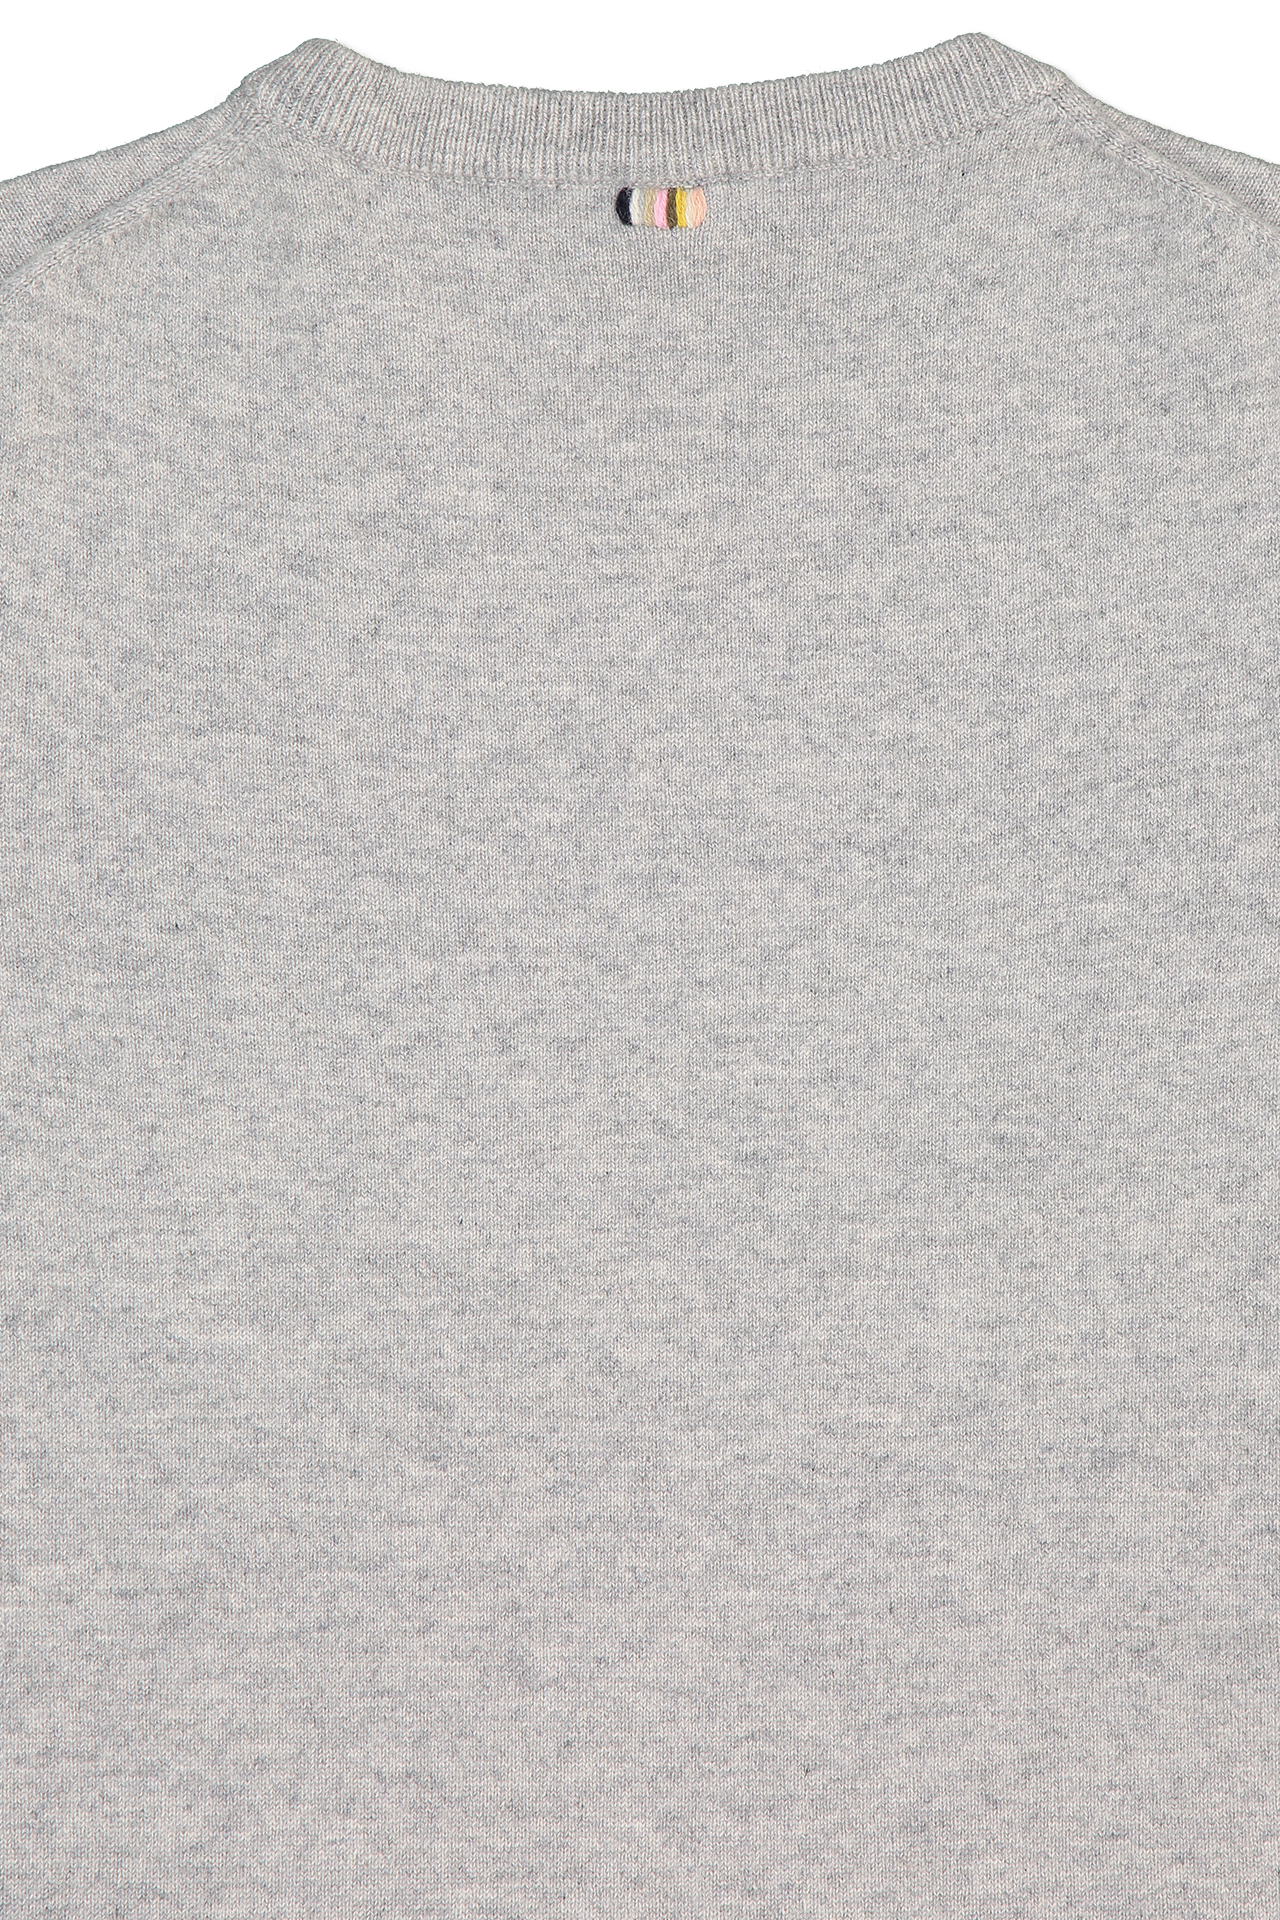 Back collar detail image of Extreme Cashmere N°64 T-Shirt Grey